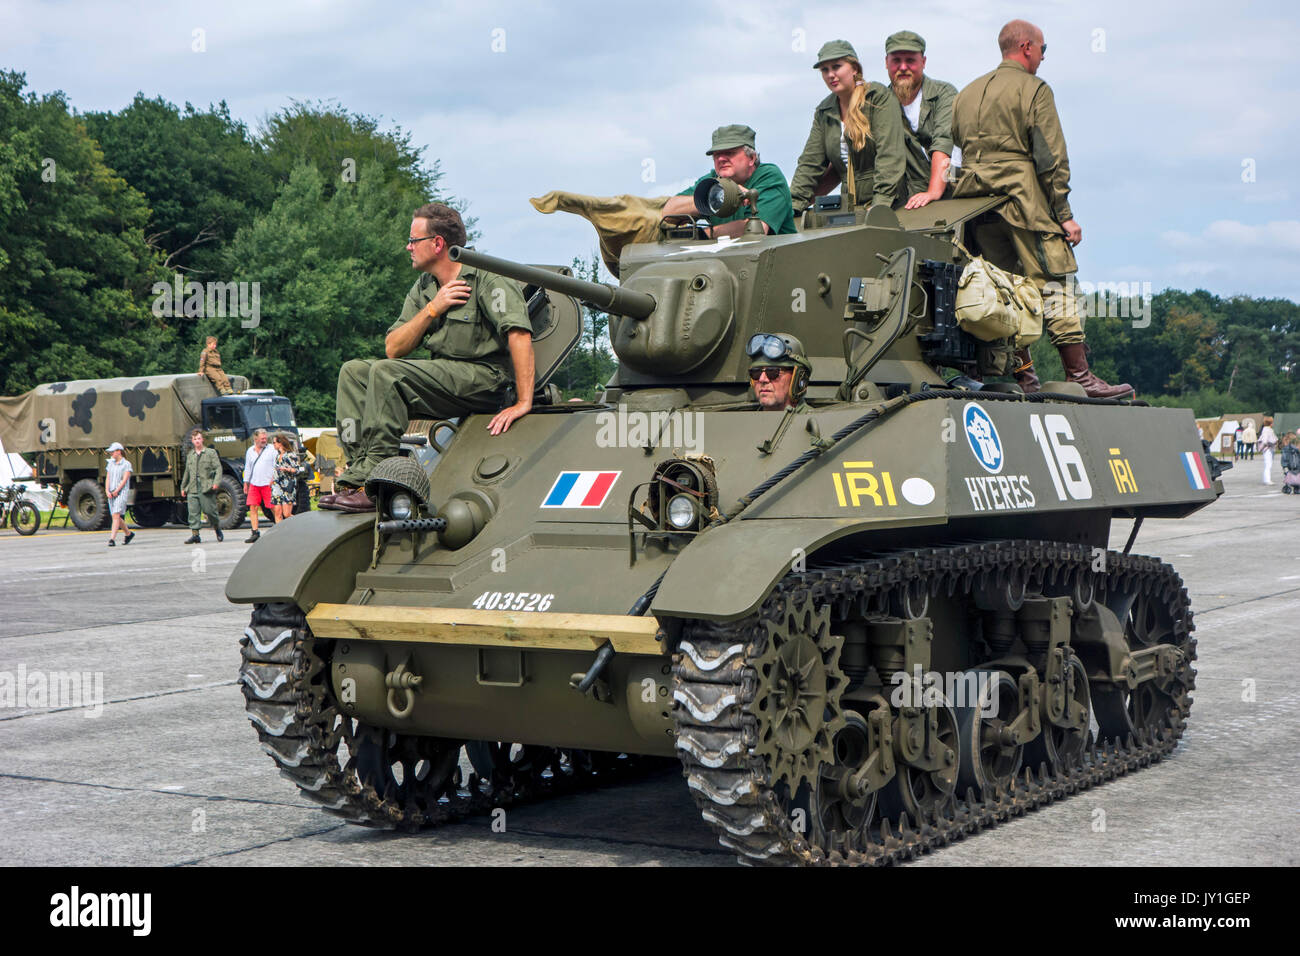 Free French M3A3 Stuart tank during WW2 military vehicles parade at Wold War Two militaria fair - Stock Image